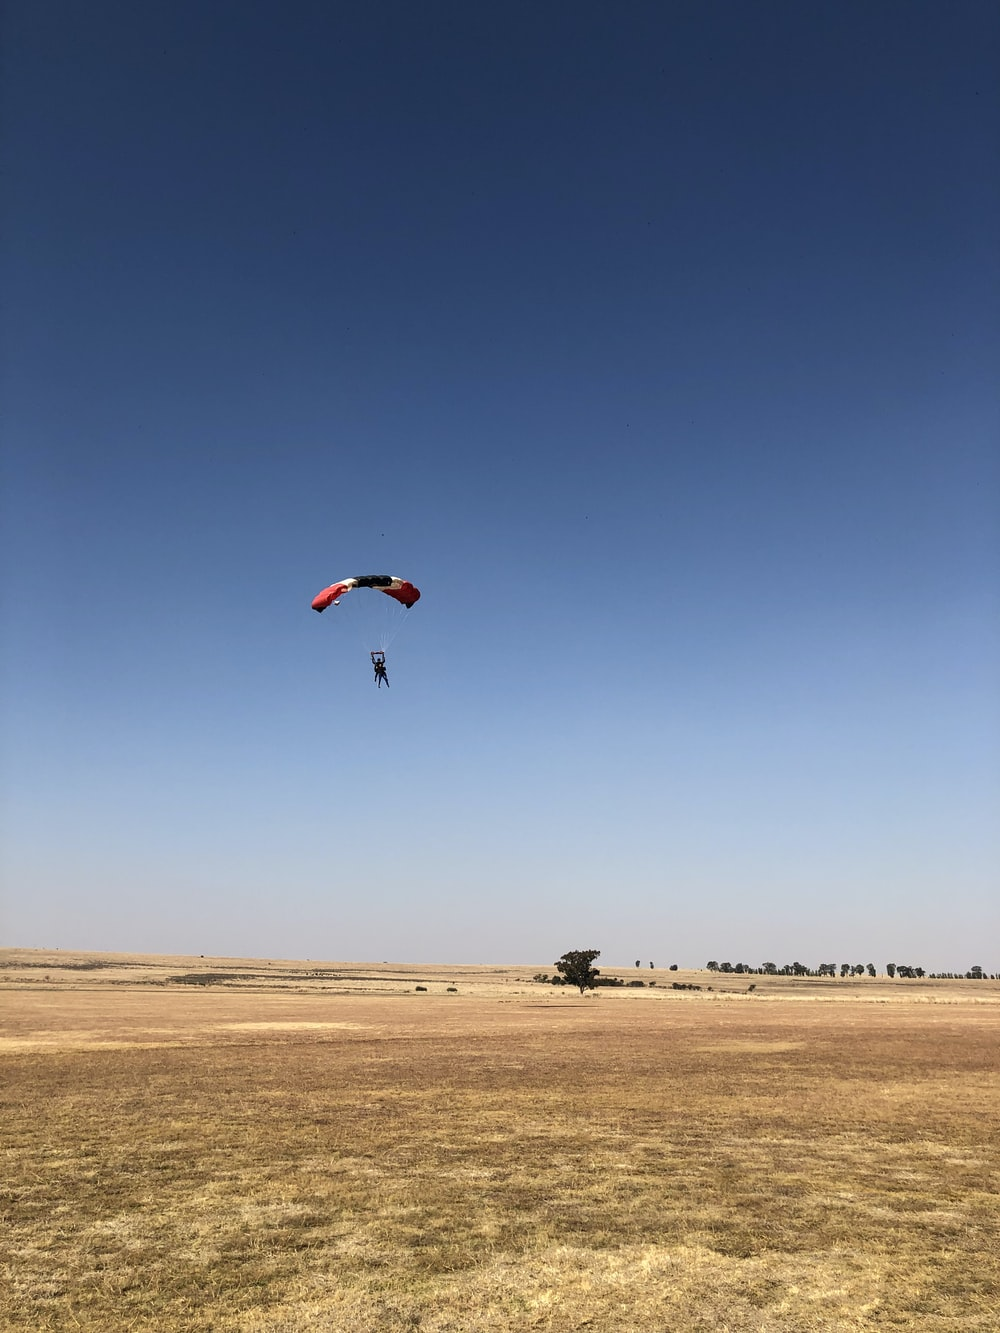 man riding on red and black parachute